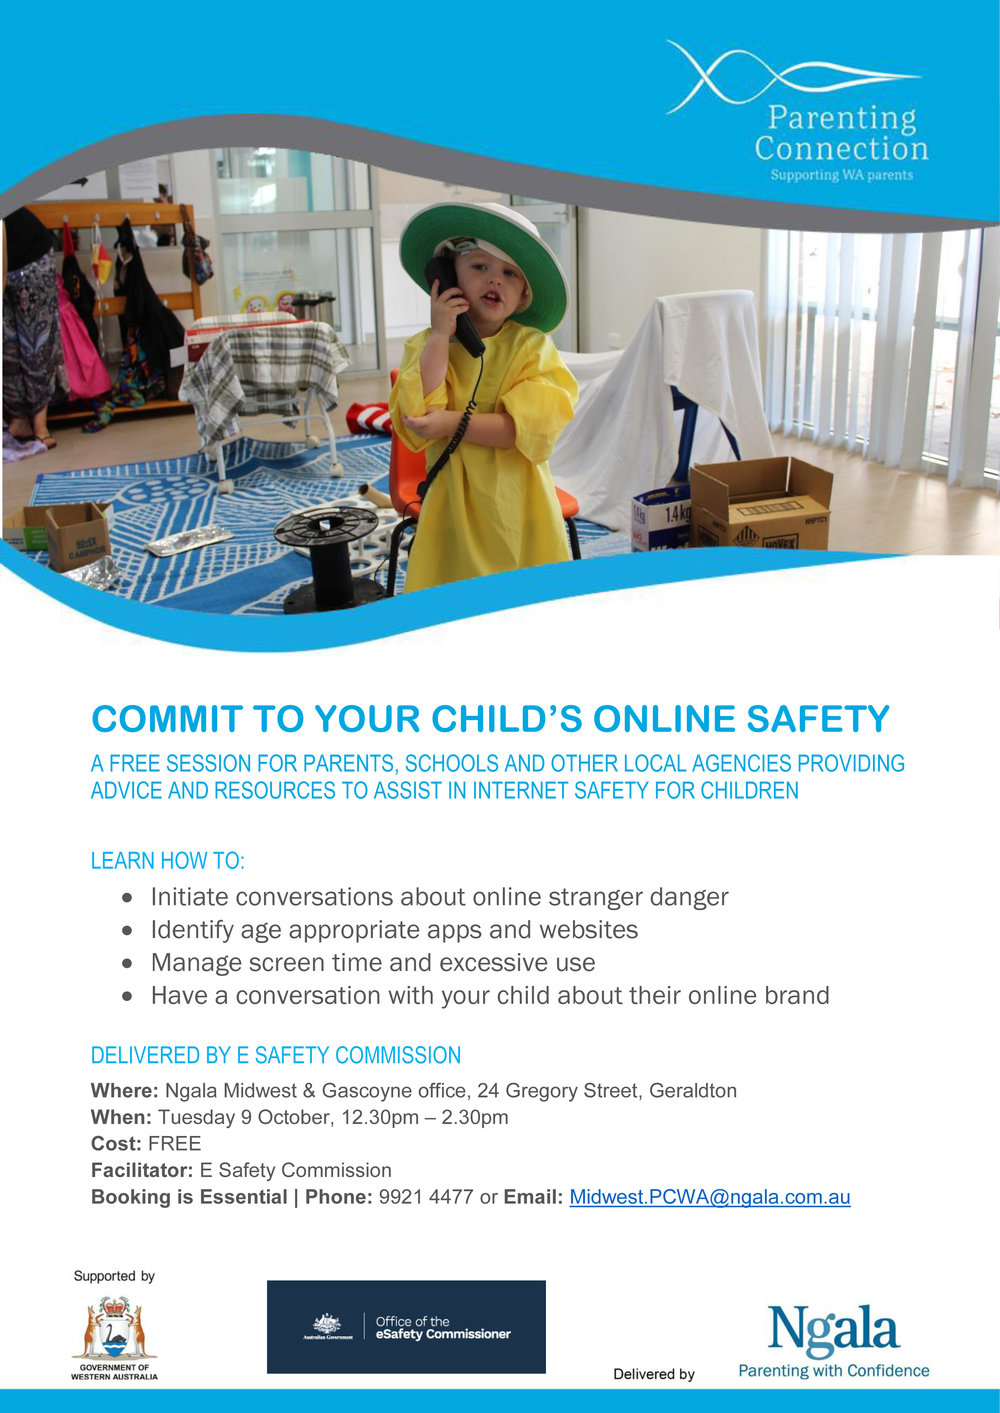 17967424_MPC Online Safety Tues 9 Oct 2018.jpg